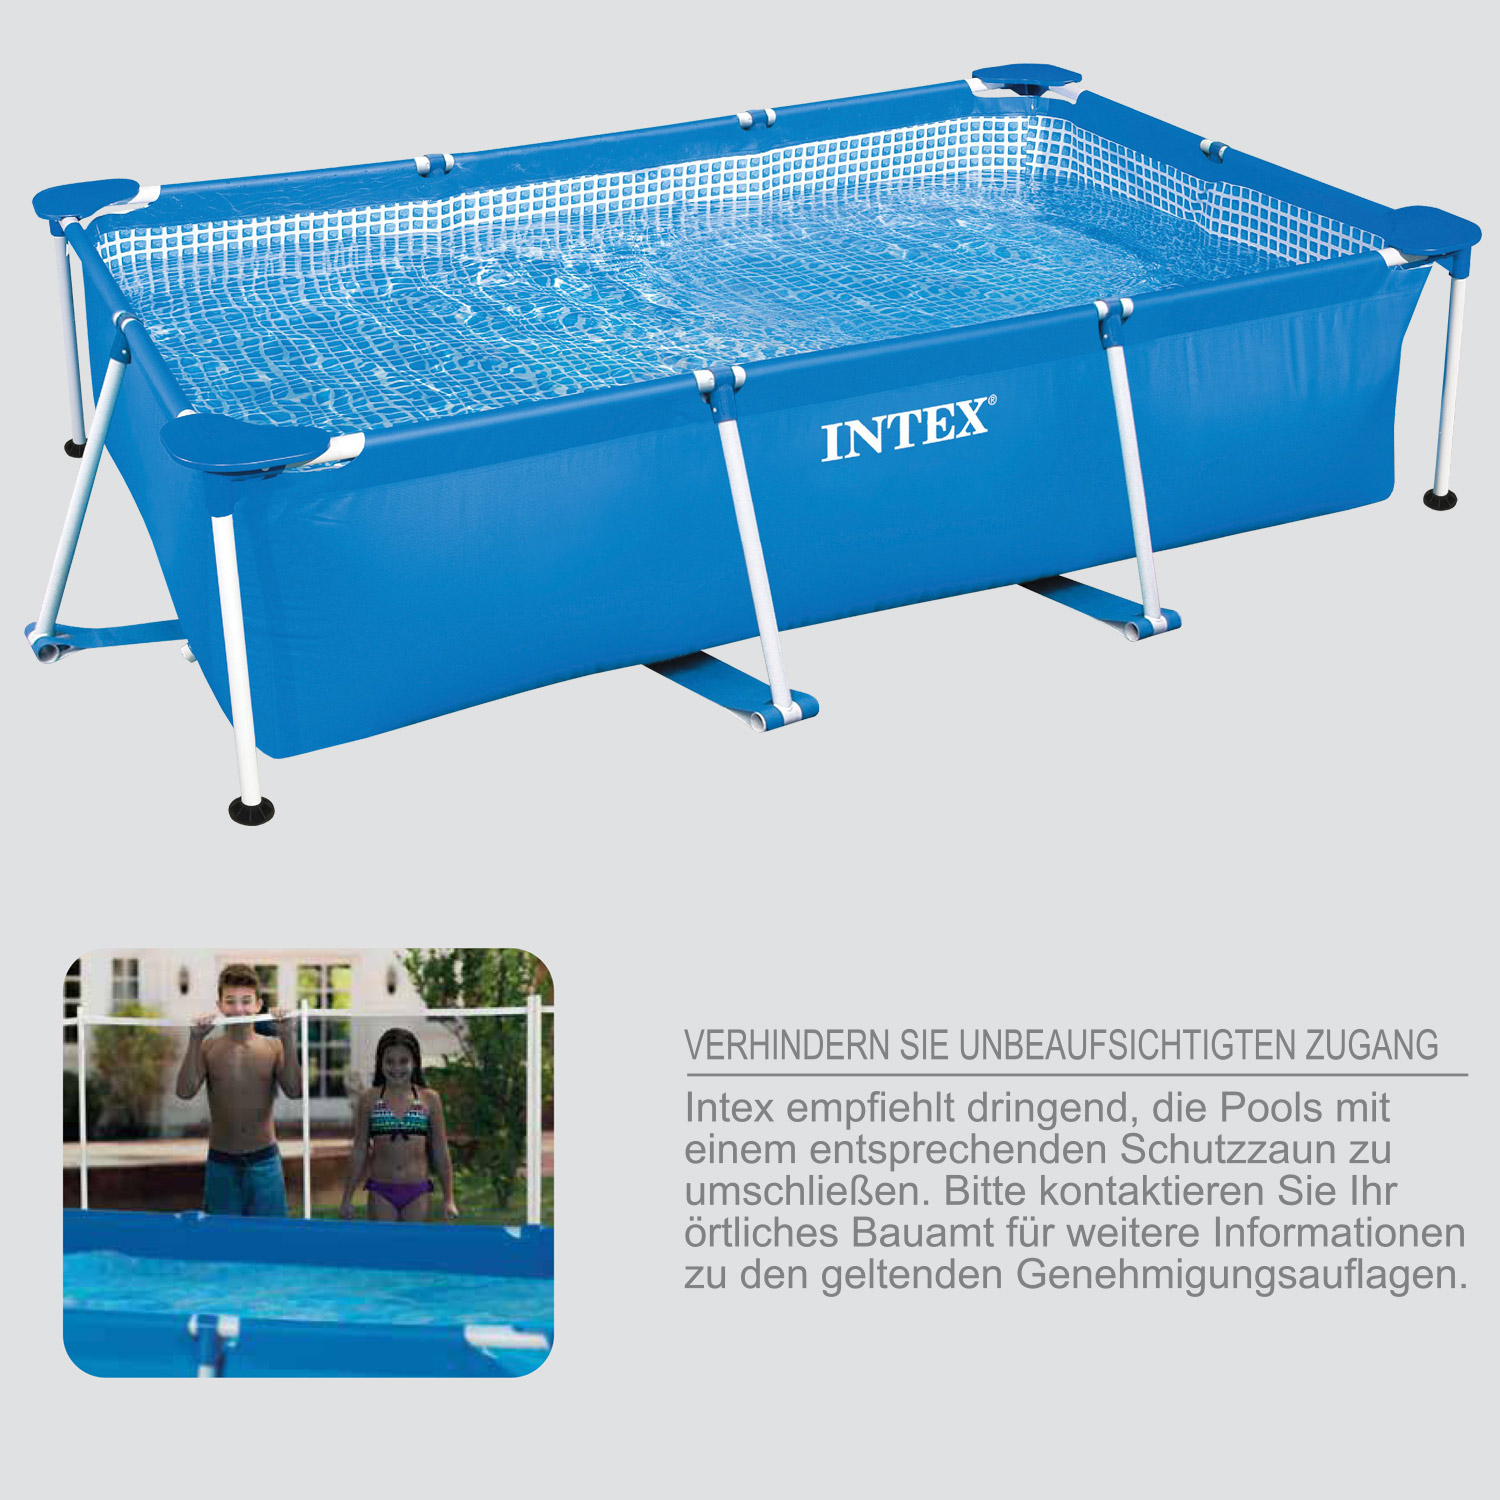 intex 260x160x65 swimming pool mit pumpe schwimmbecken. Black Bedroom Furniture Sets. Home Design Ideas